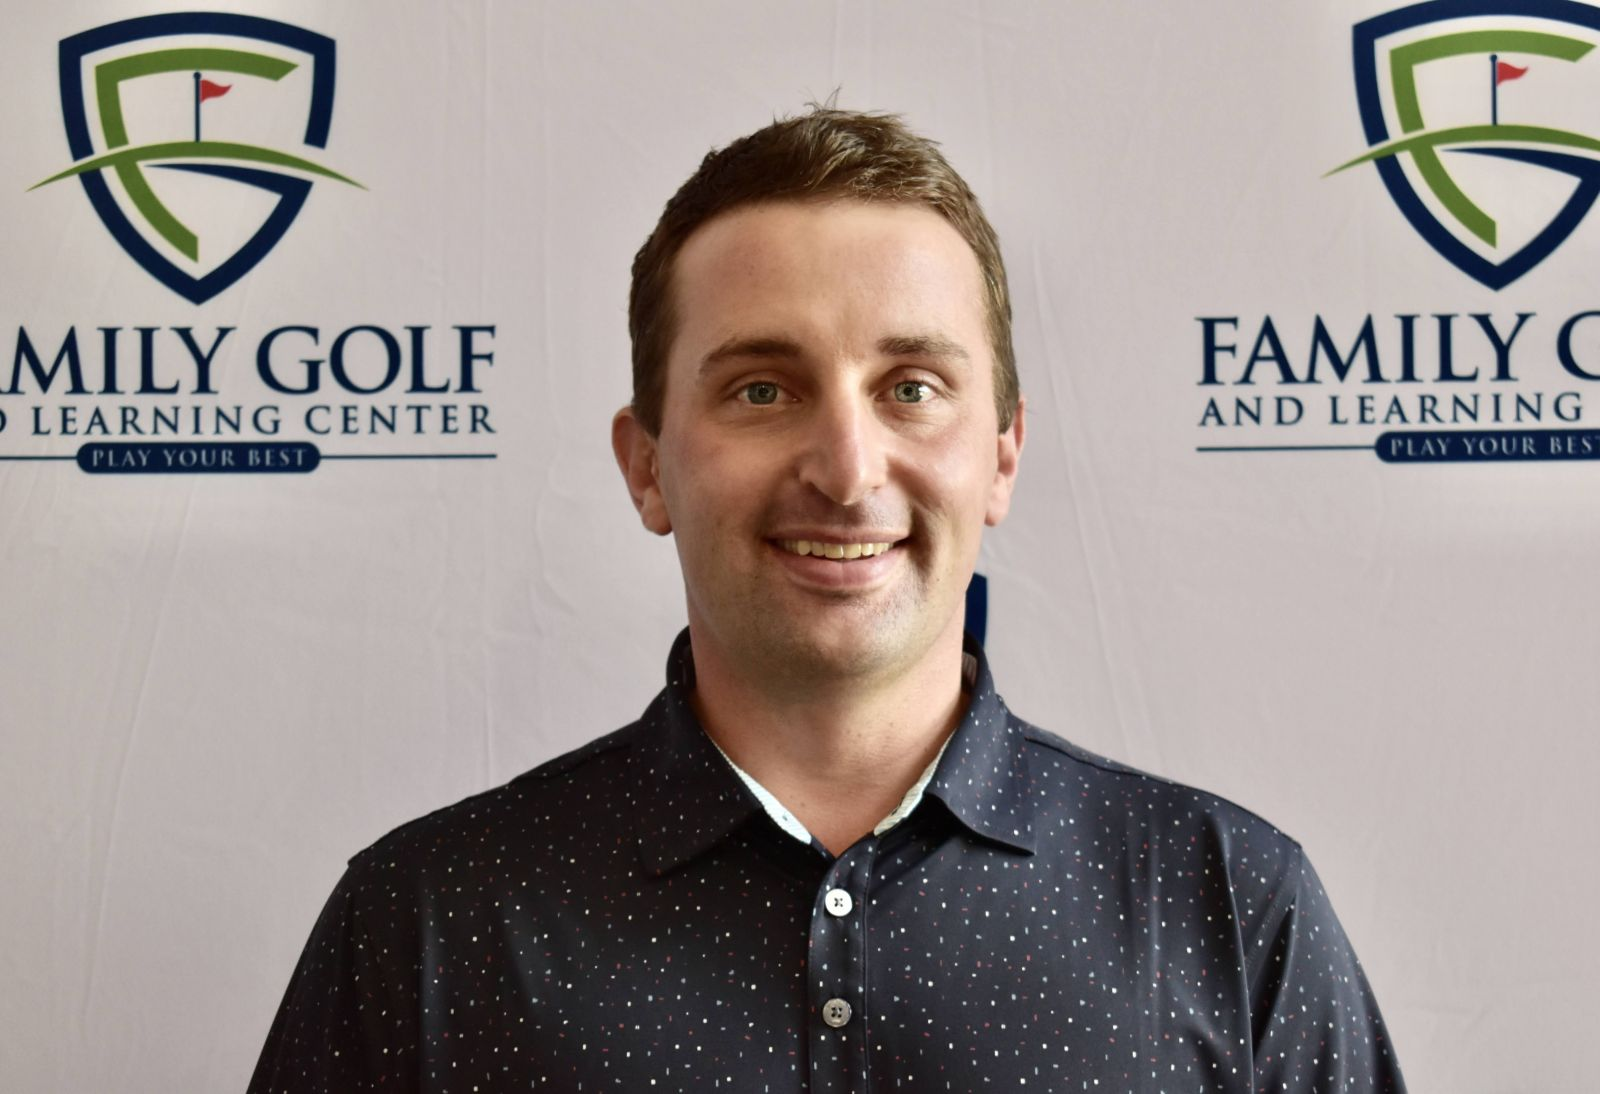 Blake Sharamitaro, teaching professional at Family Golf & Learning Center in St. Louis